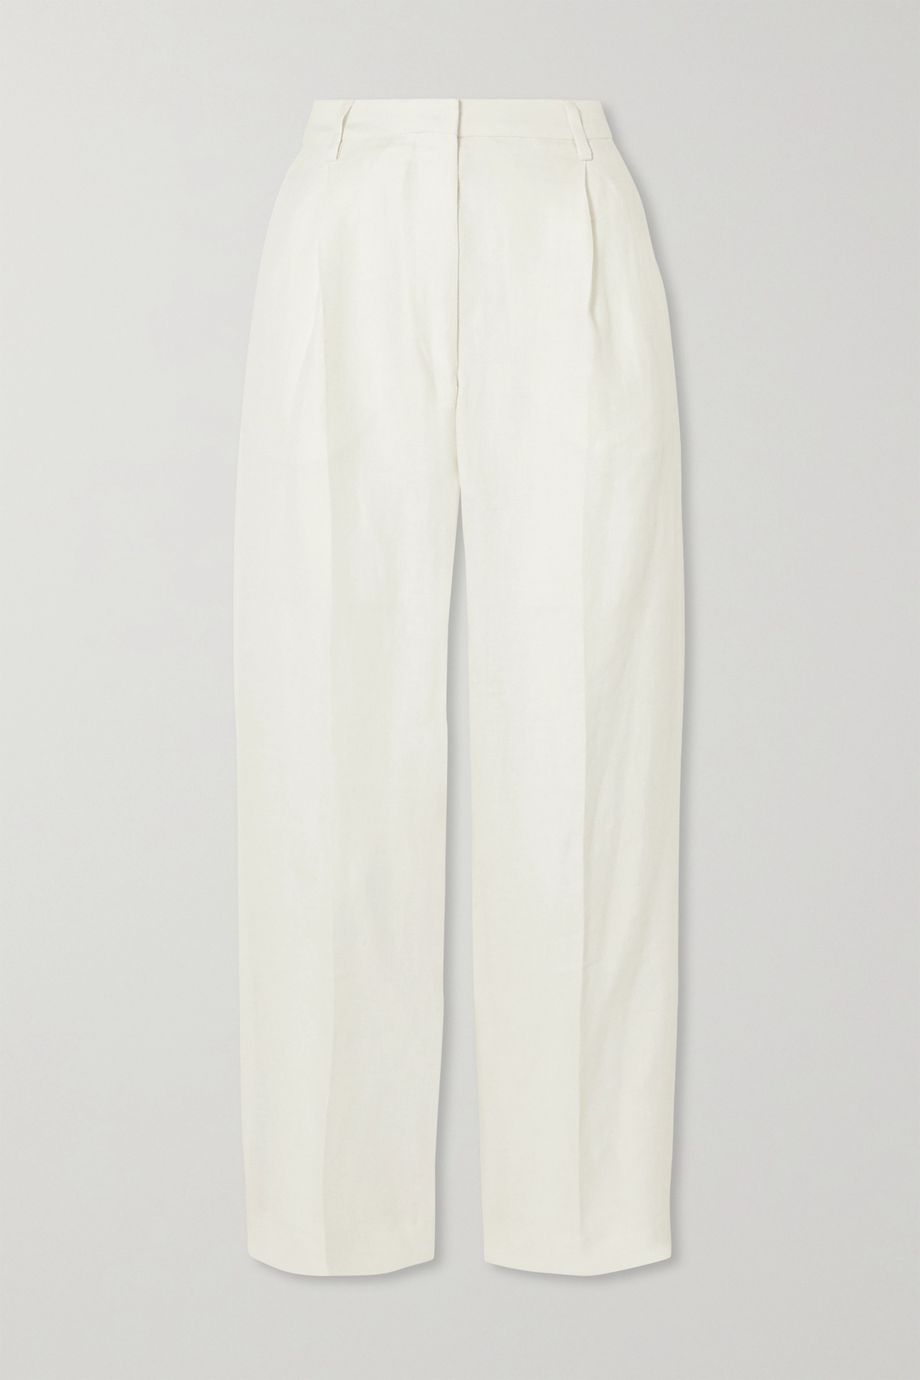 REMAIN Birger Christensen Paris linen tapered pants